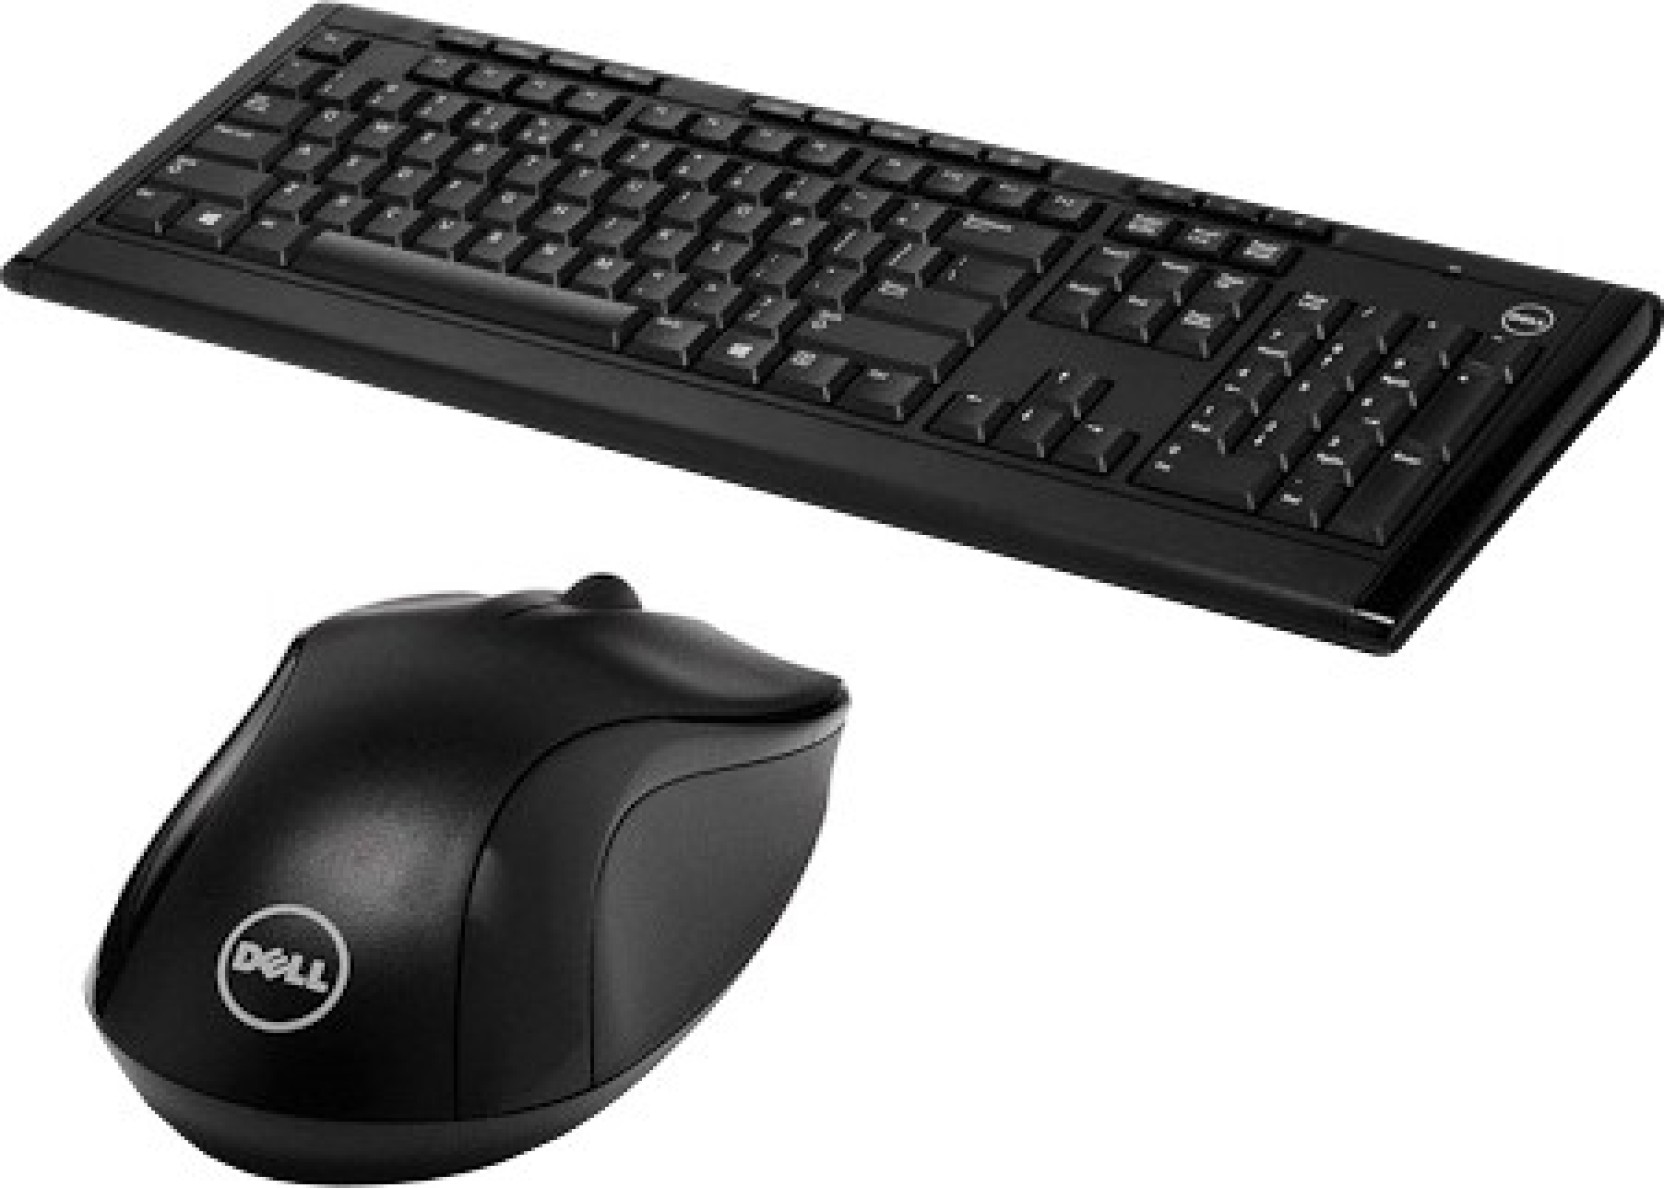 dell km113 wireless keyboard and mouse combo dell. Black Bedroom Furniture Sets. Home Design Ideas